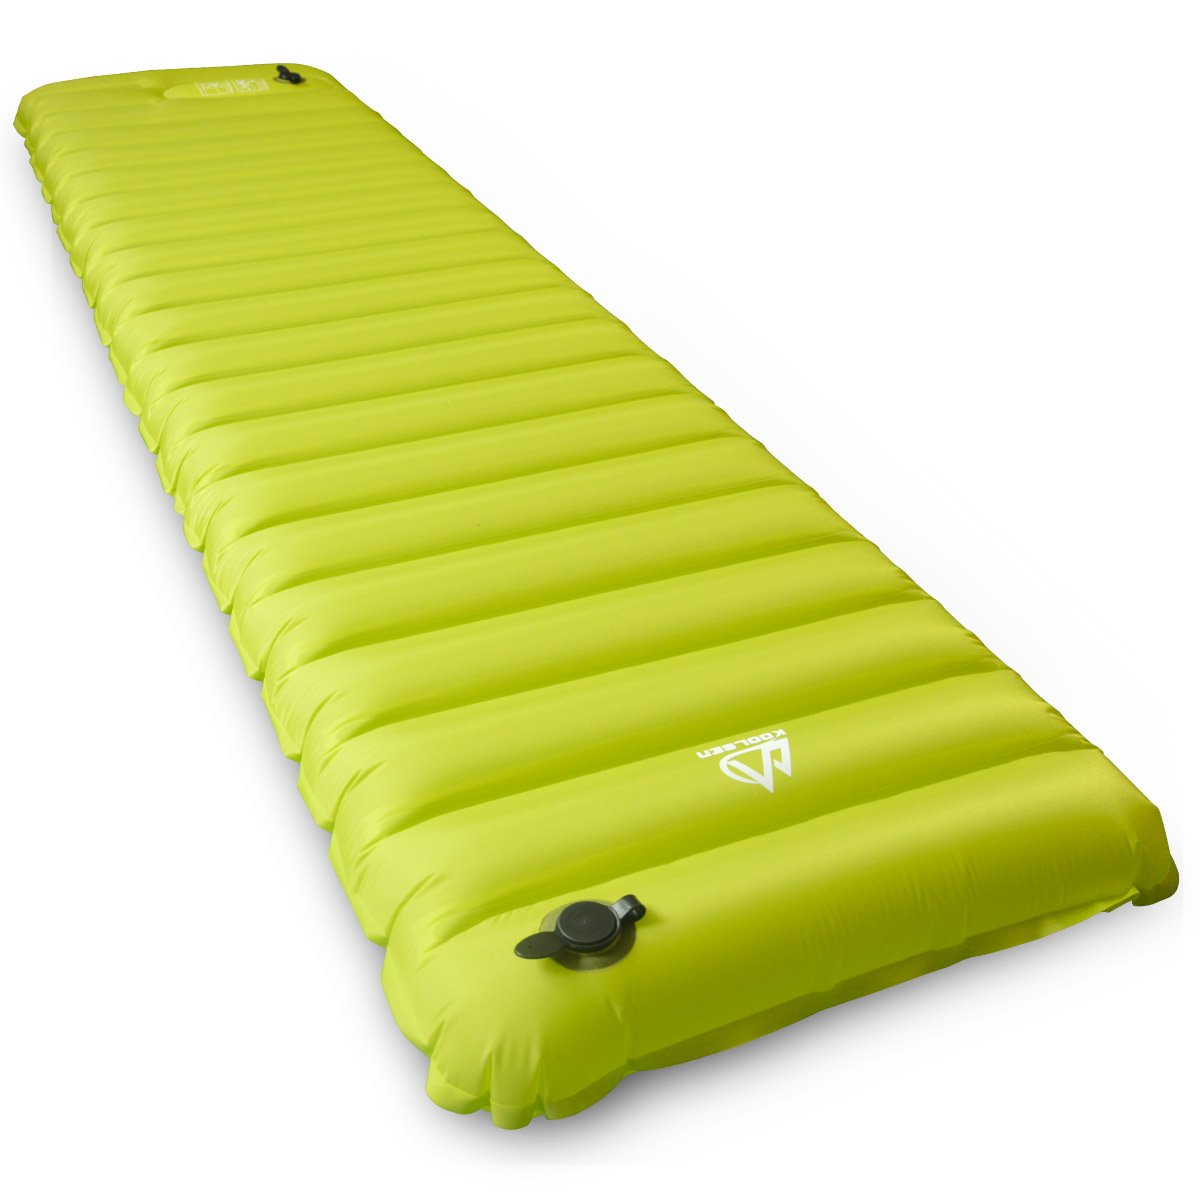 koolsen camping pad inflatable air mattress with built in pump for camping backpacking hiking